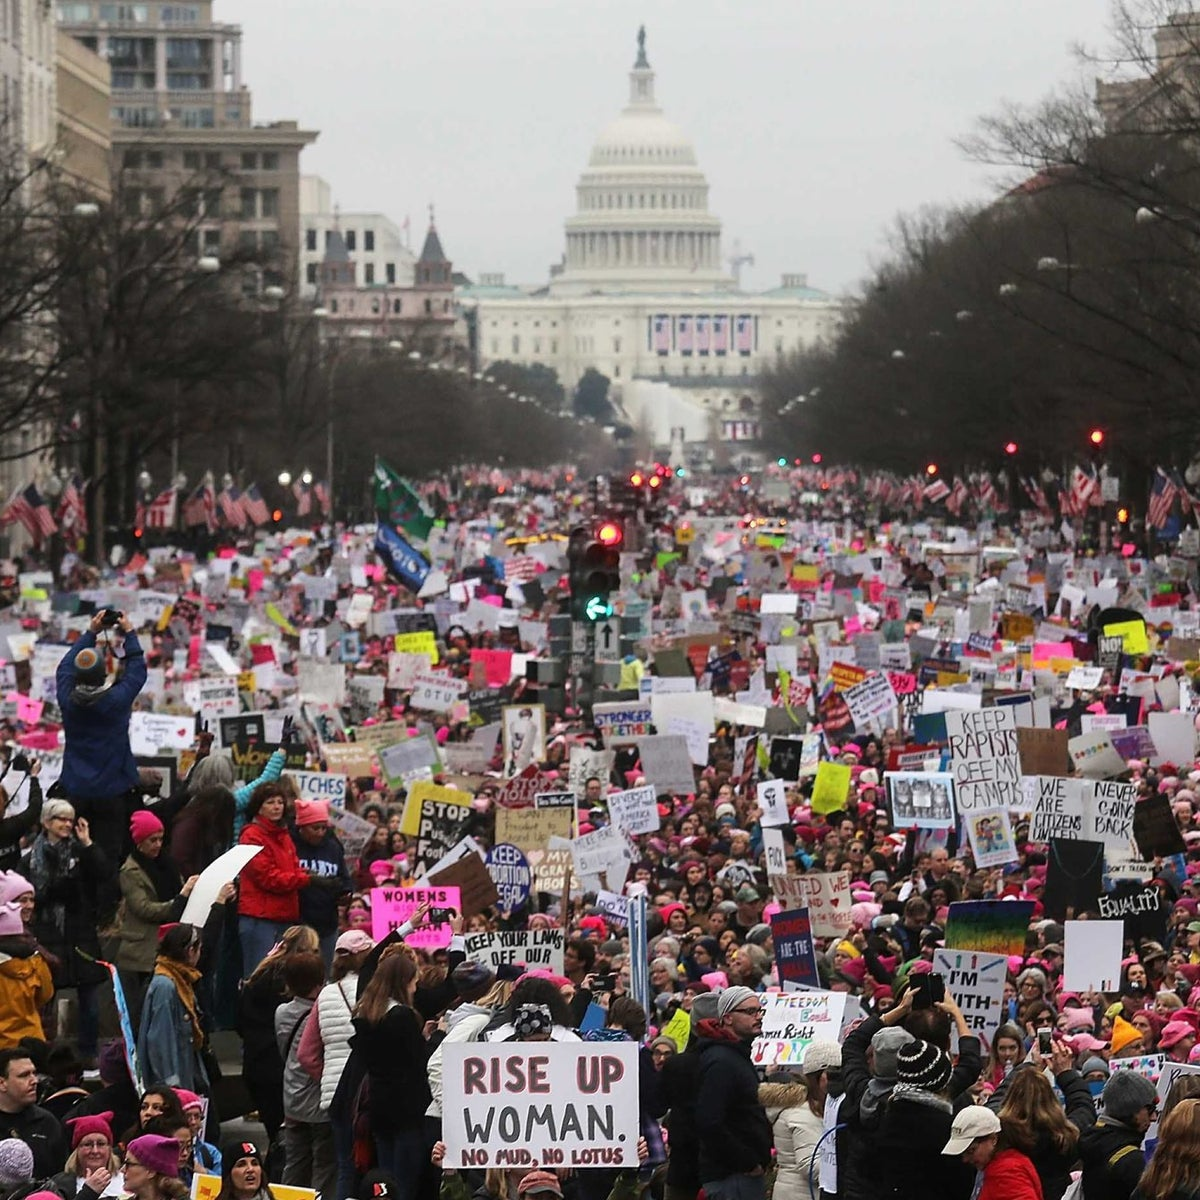 Protesters walk during the Womenױs March on Washington, with the U.S. Capitol in the background, on January 21, 2017.